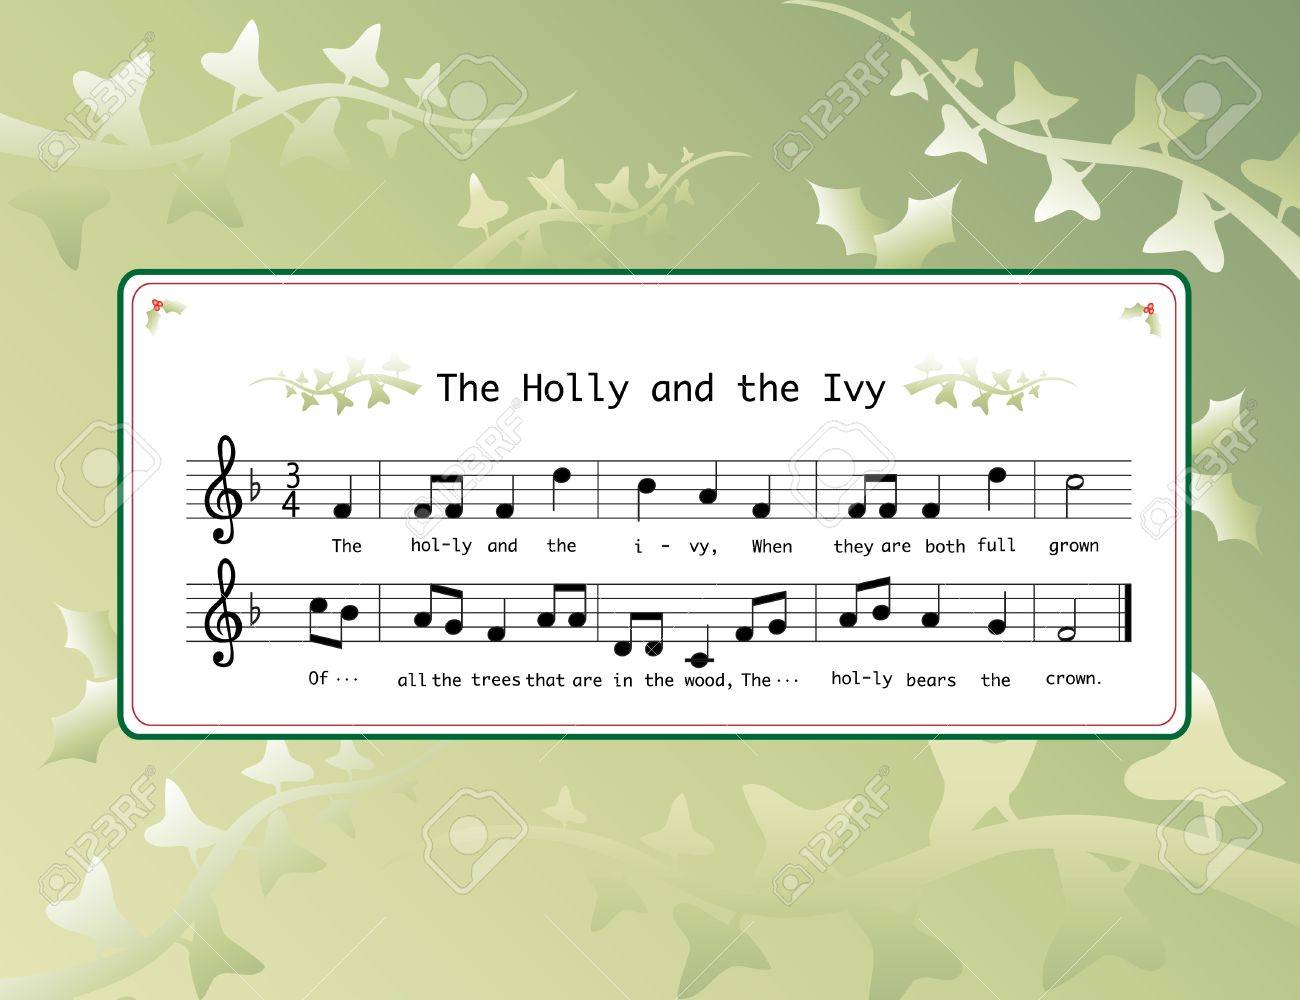 Christmas Carol Music.Music For The Christmas Carol The Holly And The Ivy On Background